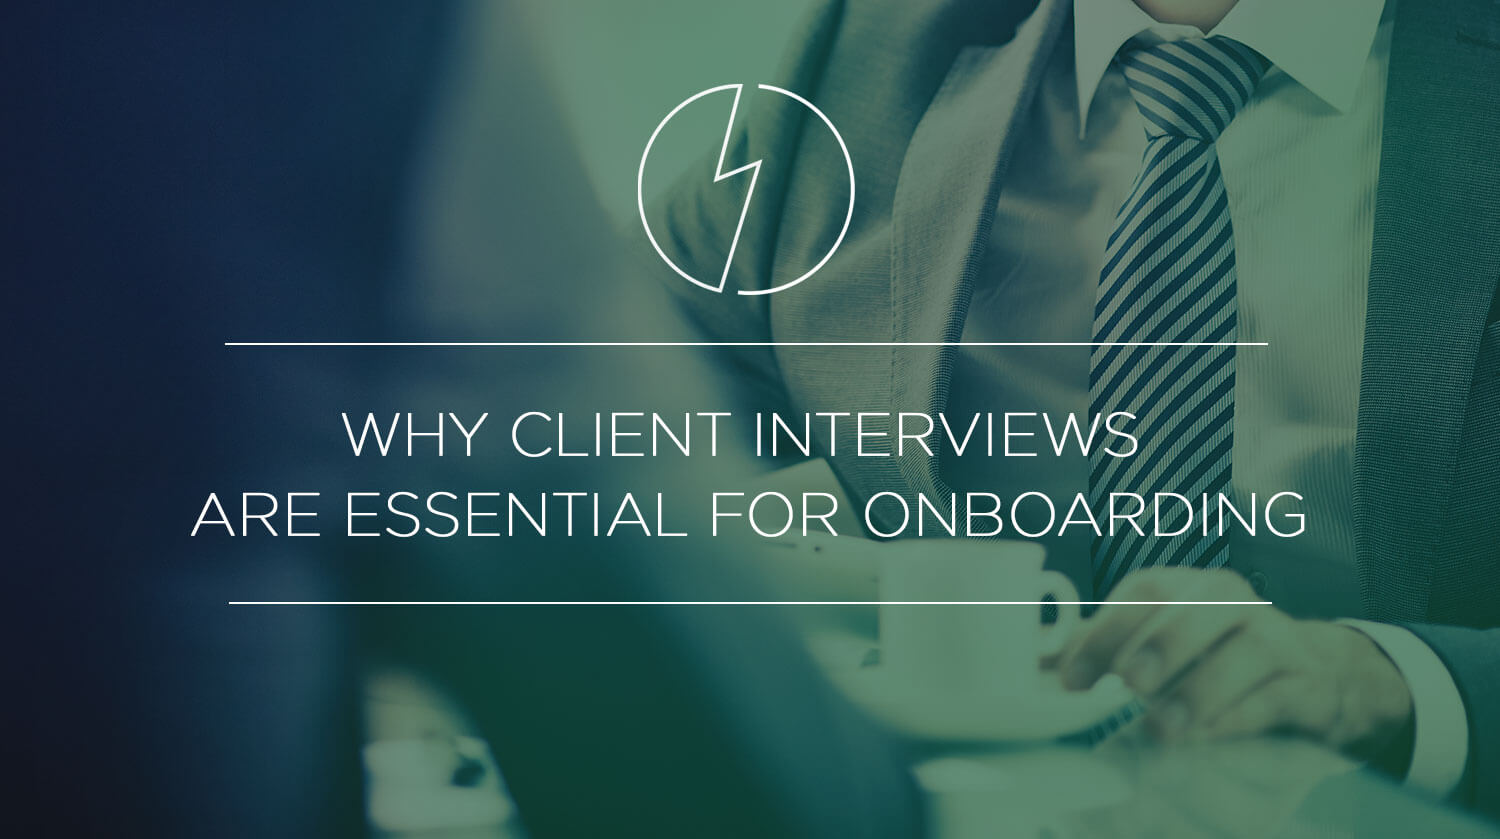 Why Client Interviews Are Essential for Onboarding